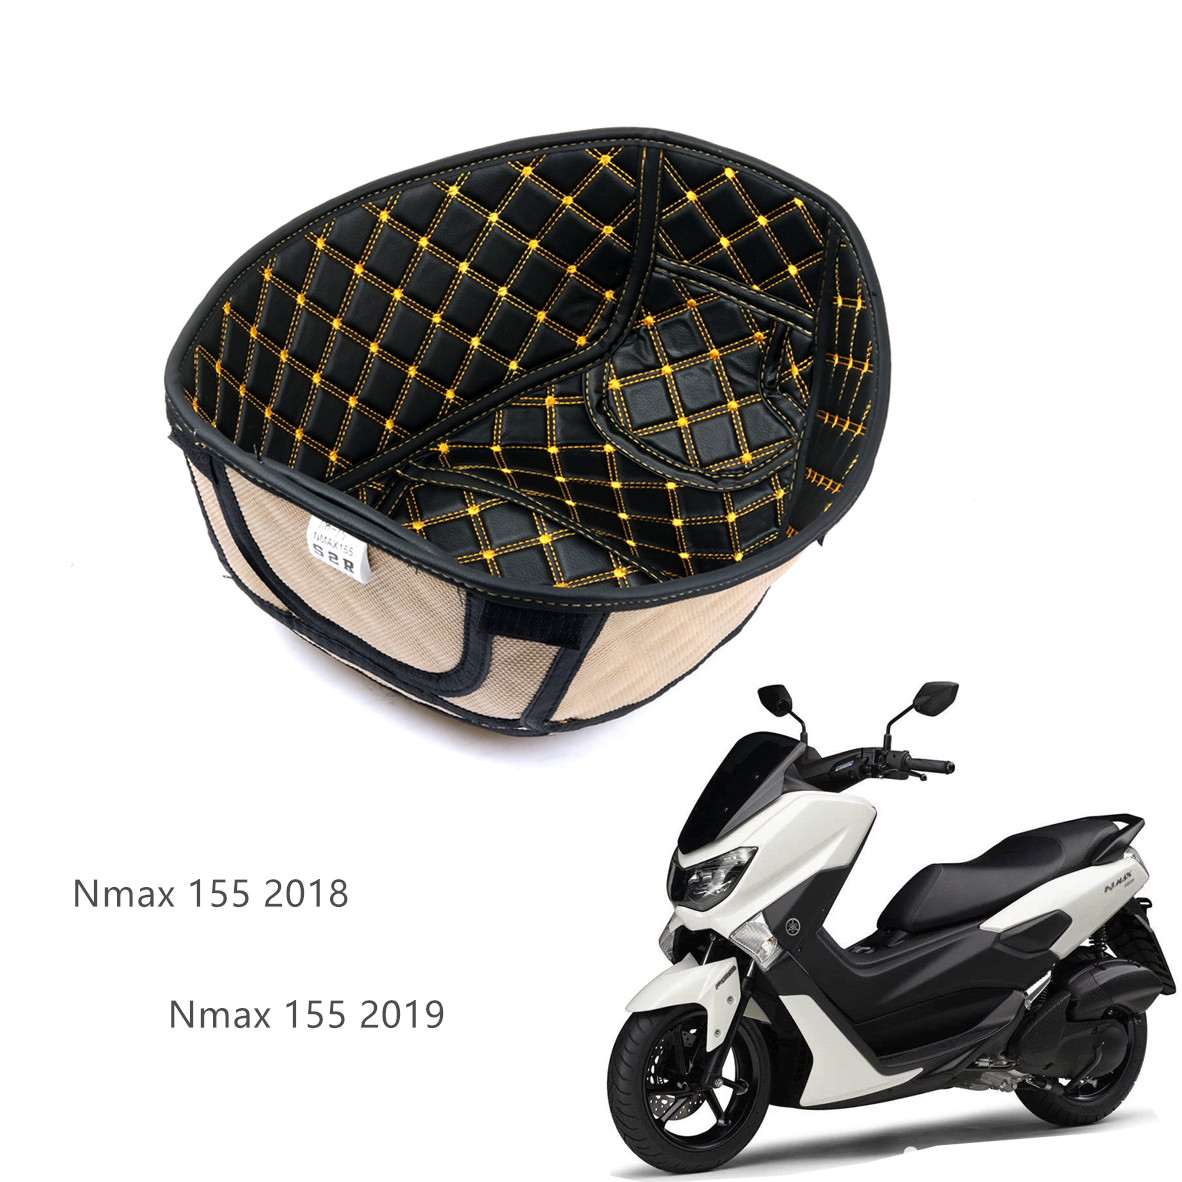 Nmax155 Rear Trunk Cargo Liner Protector Motorcycle Seat Bucket Pad Storage Box Mat For Yamaha N-max155 Nmax 155 2018 2019